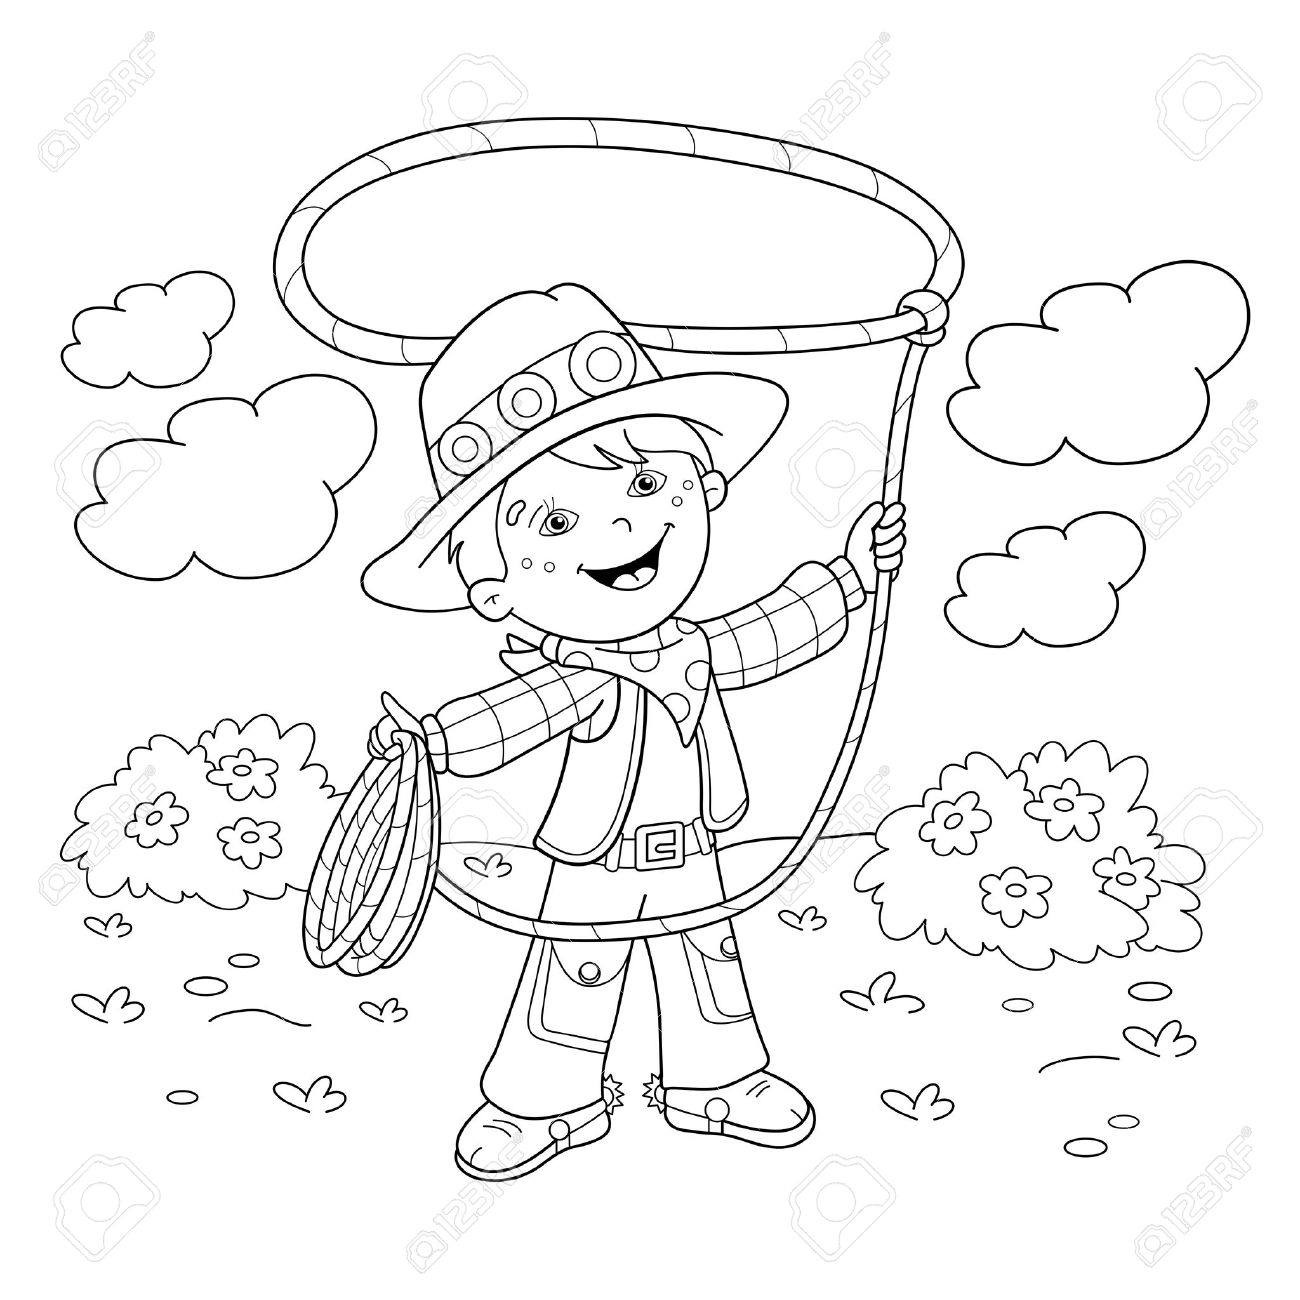 coloring page outline of cartoon cowboy with lasso coloring